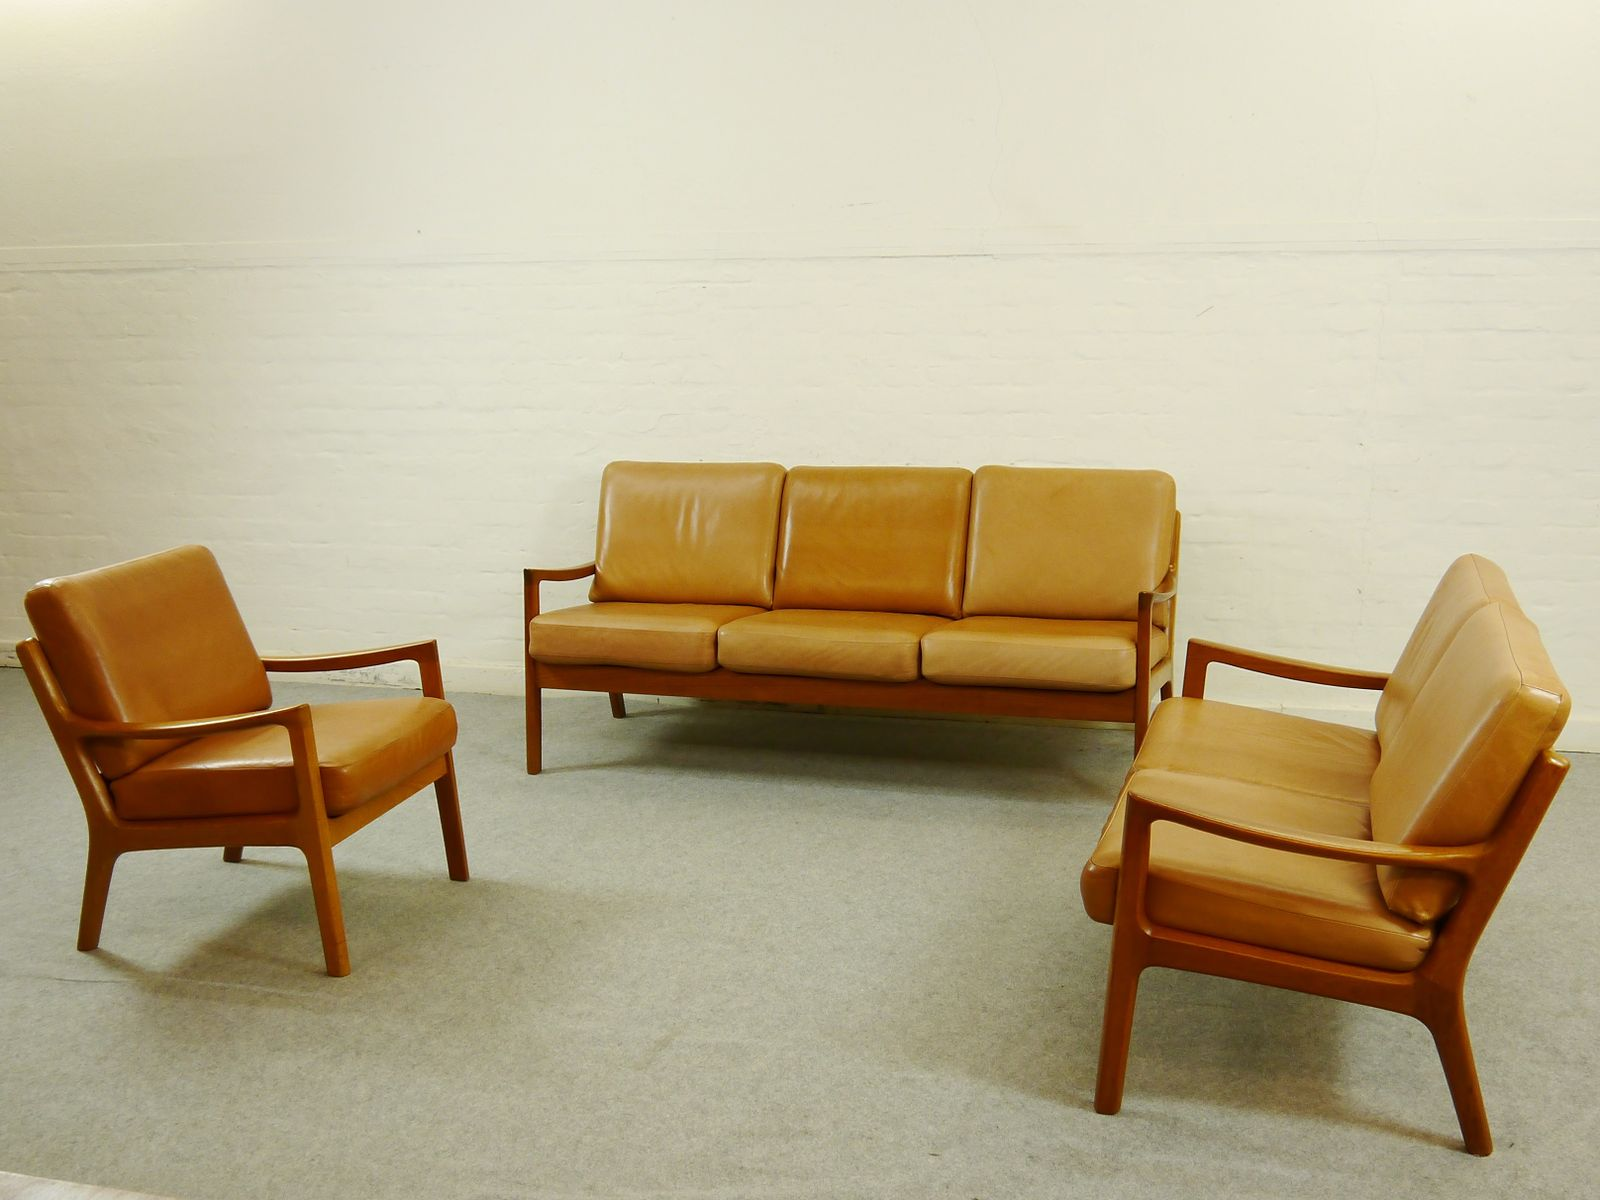 Senator living room suite by ole wanscher for cado set of for Living room suites for sale